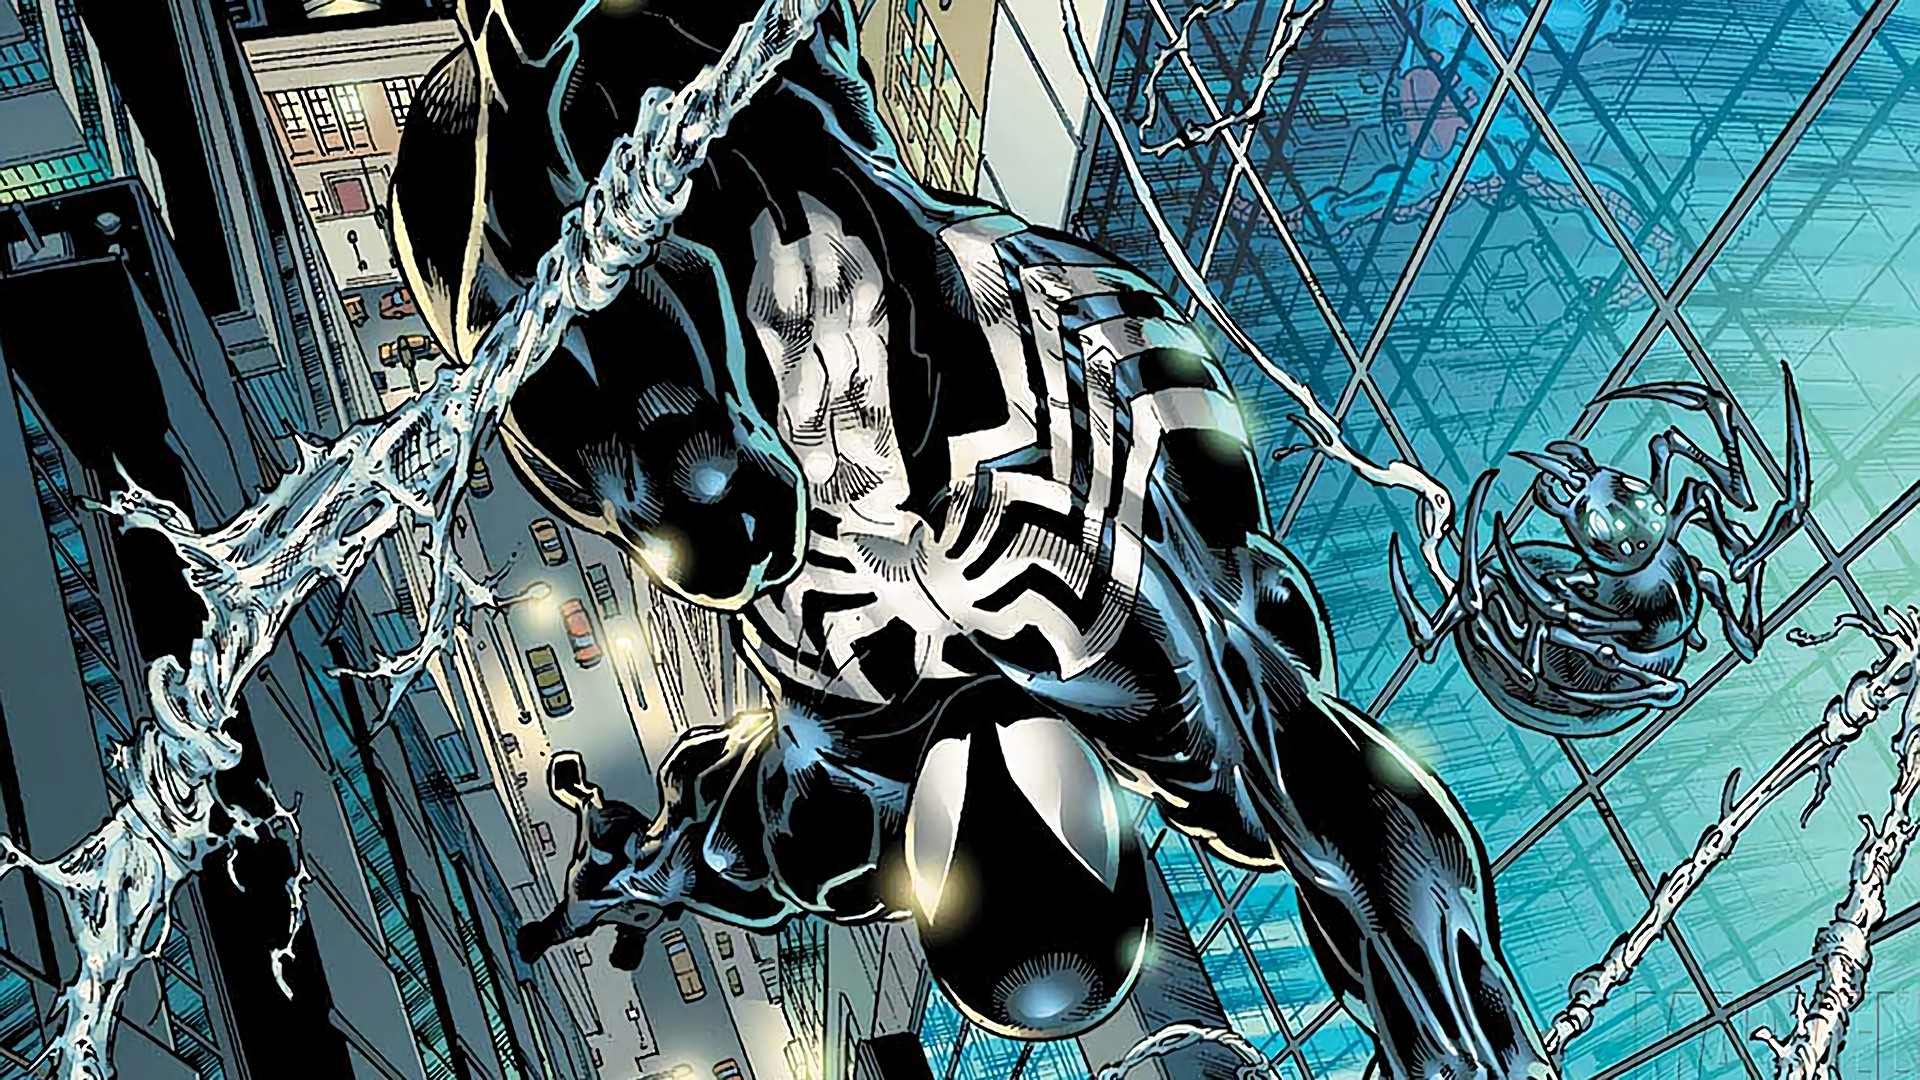 Black suit spiderman wallpaper 75 images - Black and white spiderman wallpaper ...